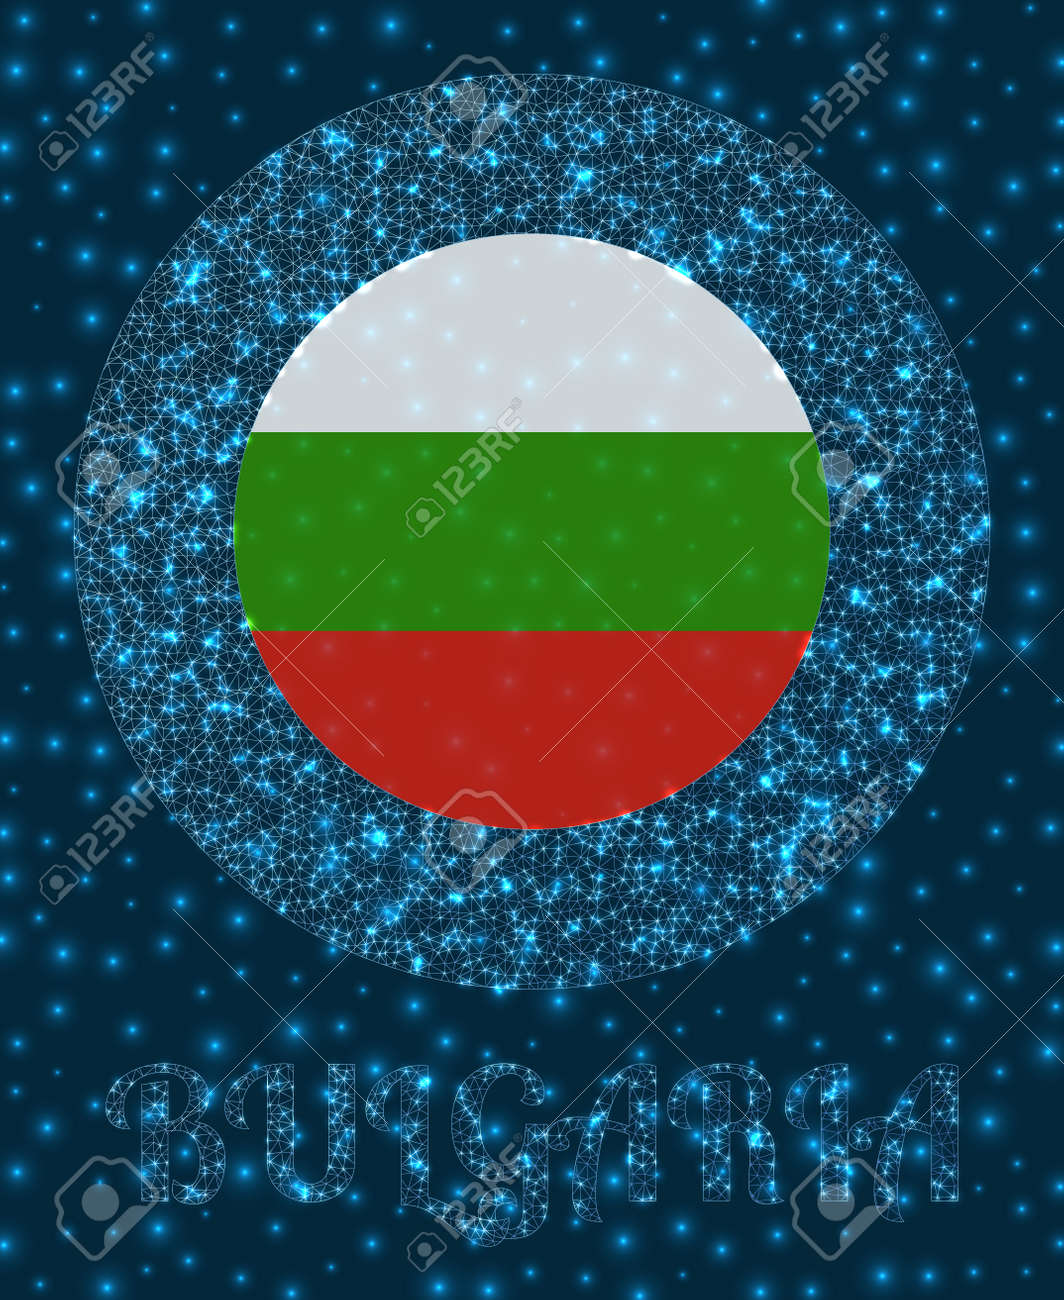 Round Bulgaria badge. Flag of Bulgaria in glowing network mesh style. Country network logo. Appealing vector illustration. - 158518617